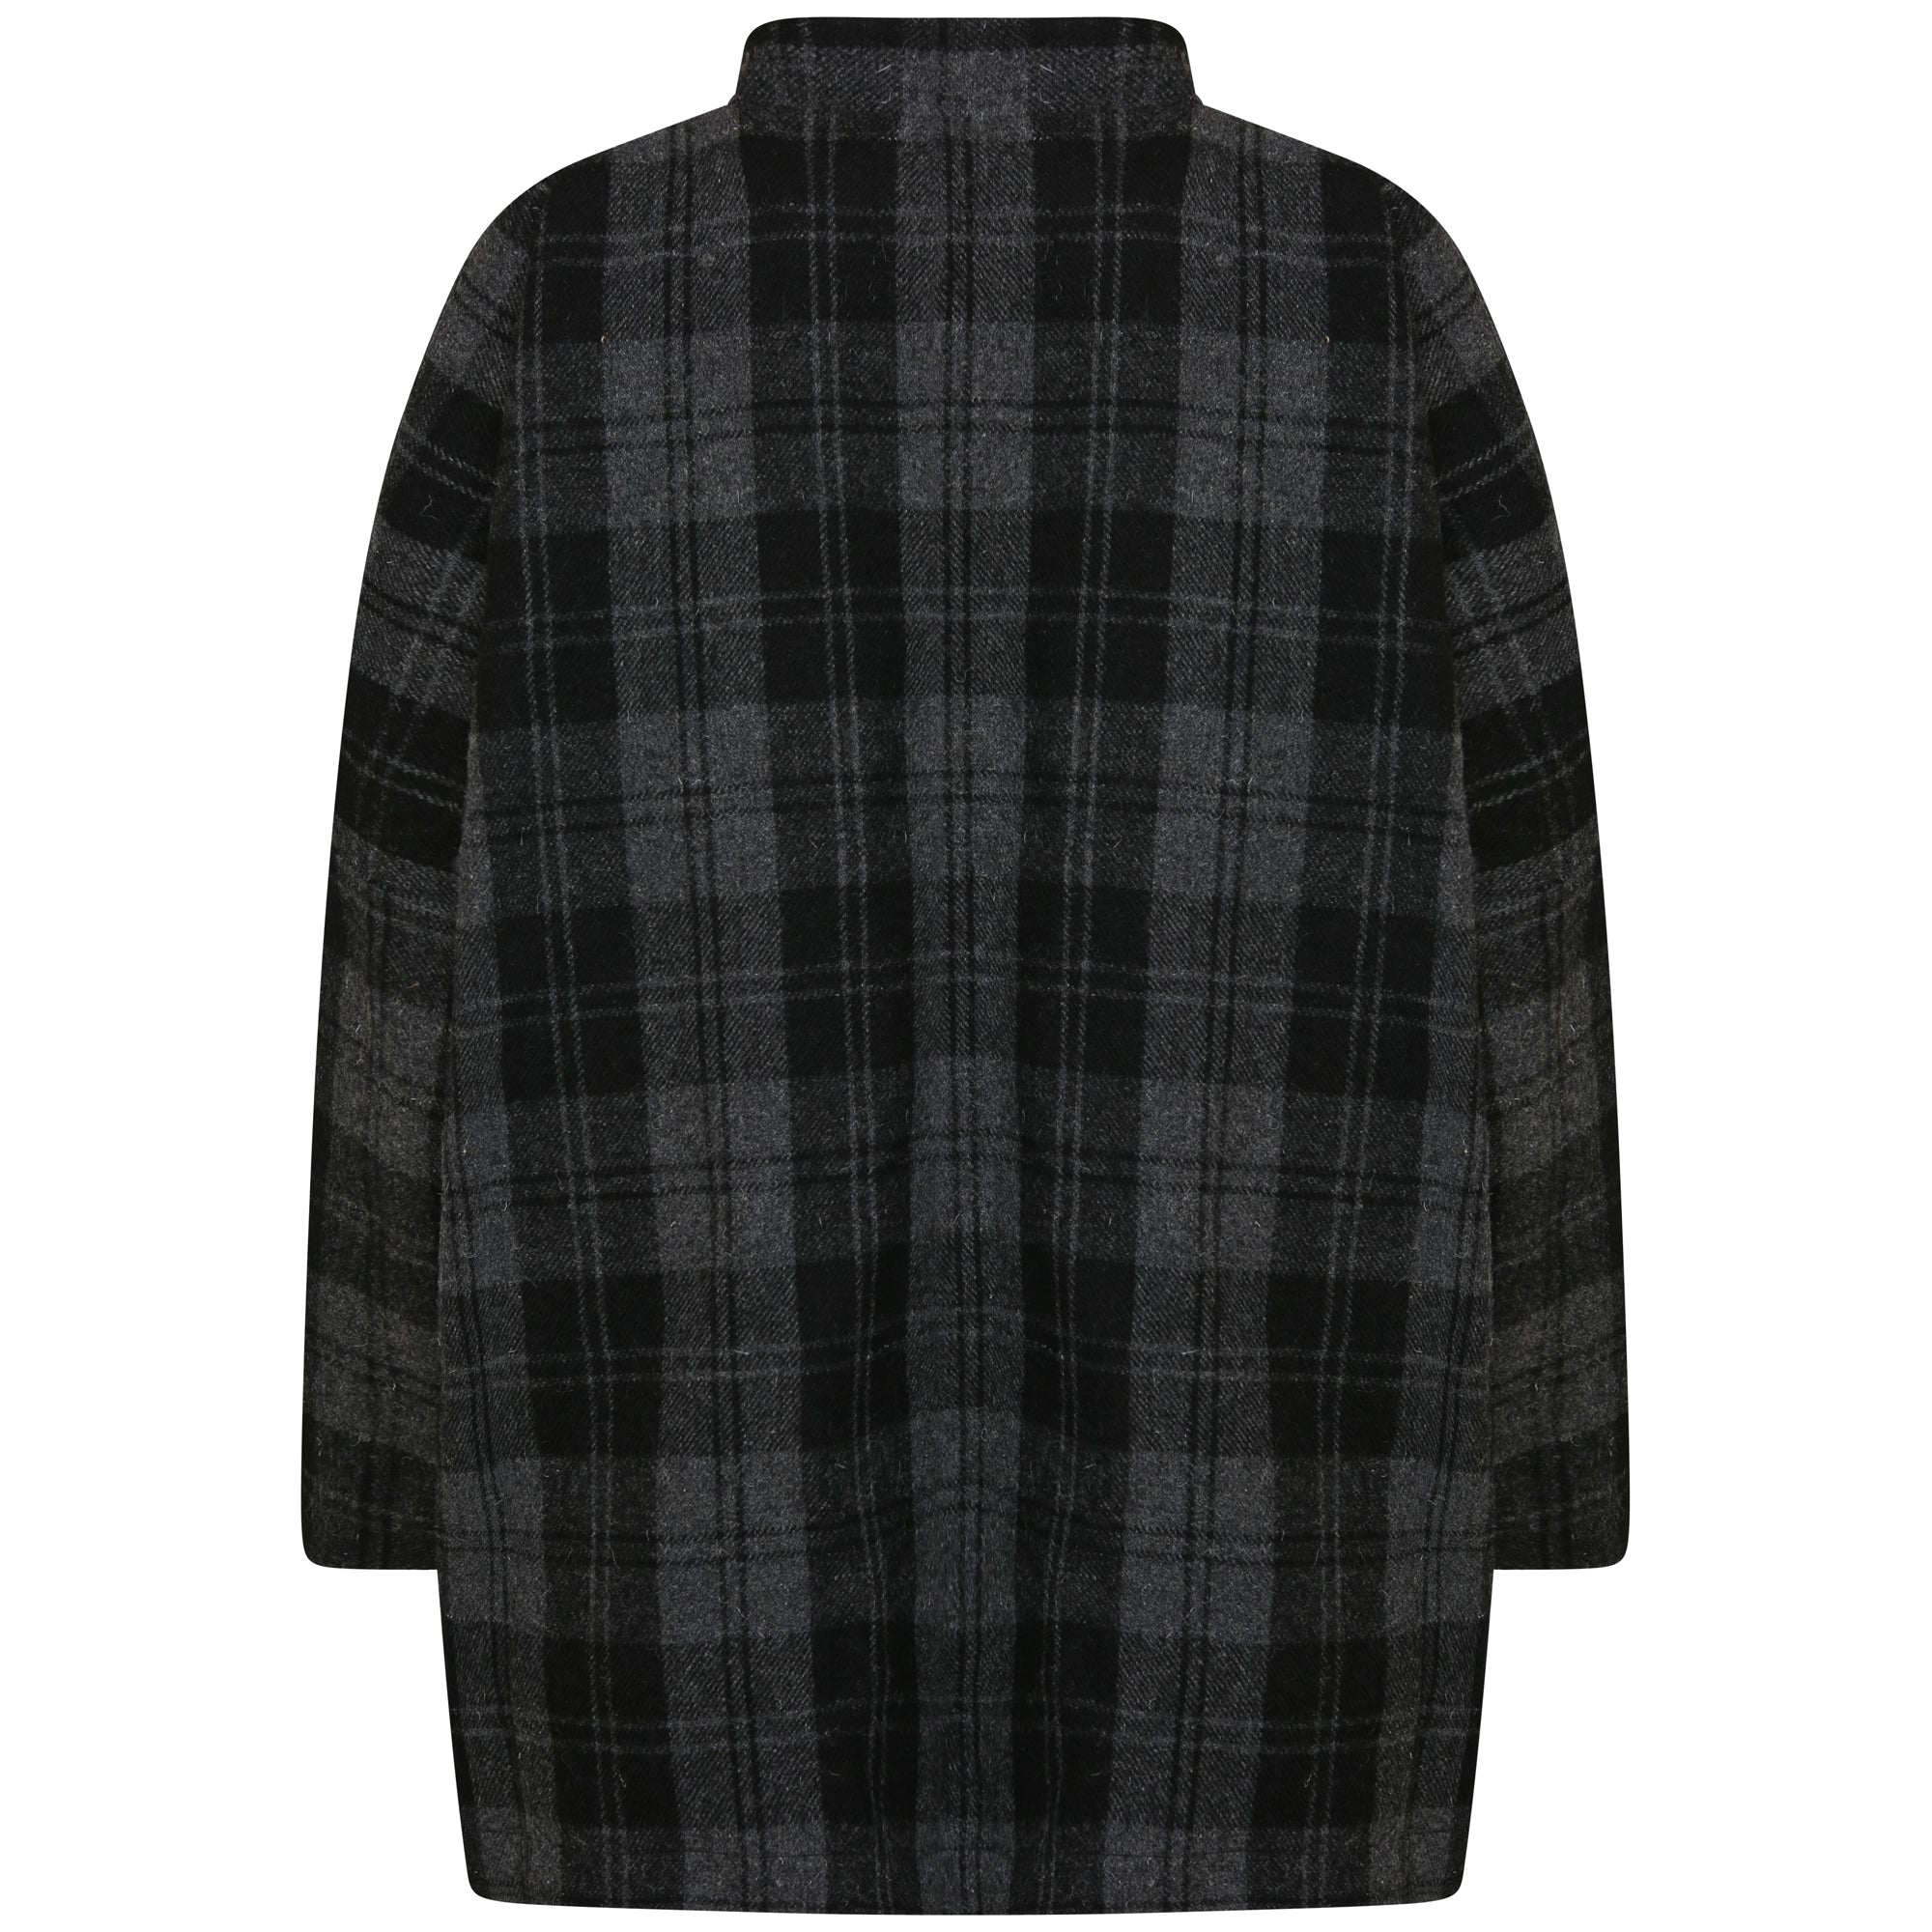 BRITISH WOOL OVERSIZED JACKET SHIRT | CHARCOAL BLUE PLAID